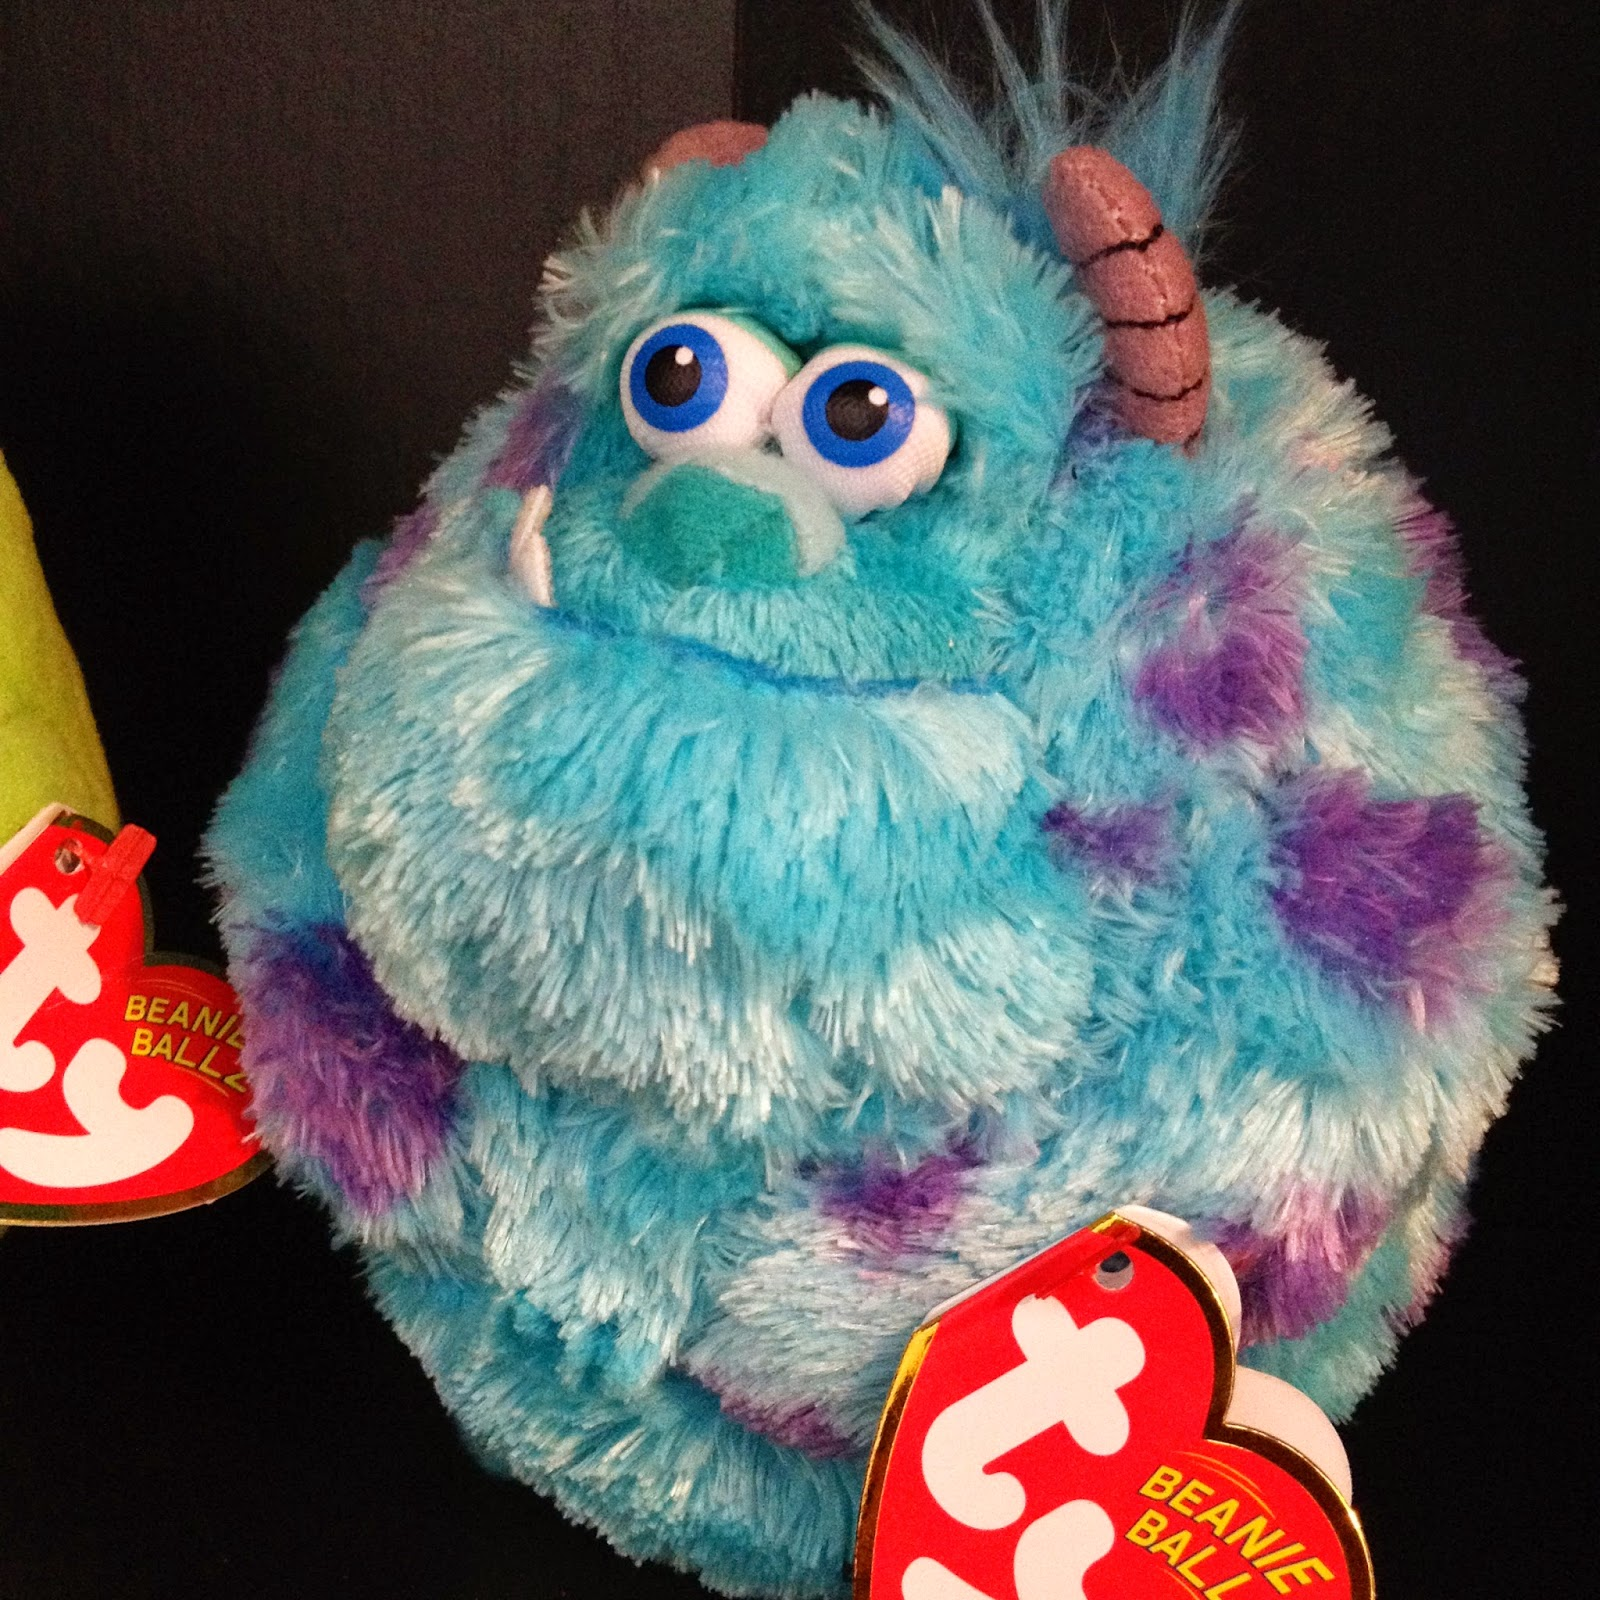 d0a9accb00b Dan the Pixar Fan  Monsters University  Mike and Sulley